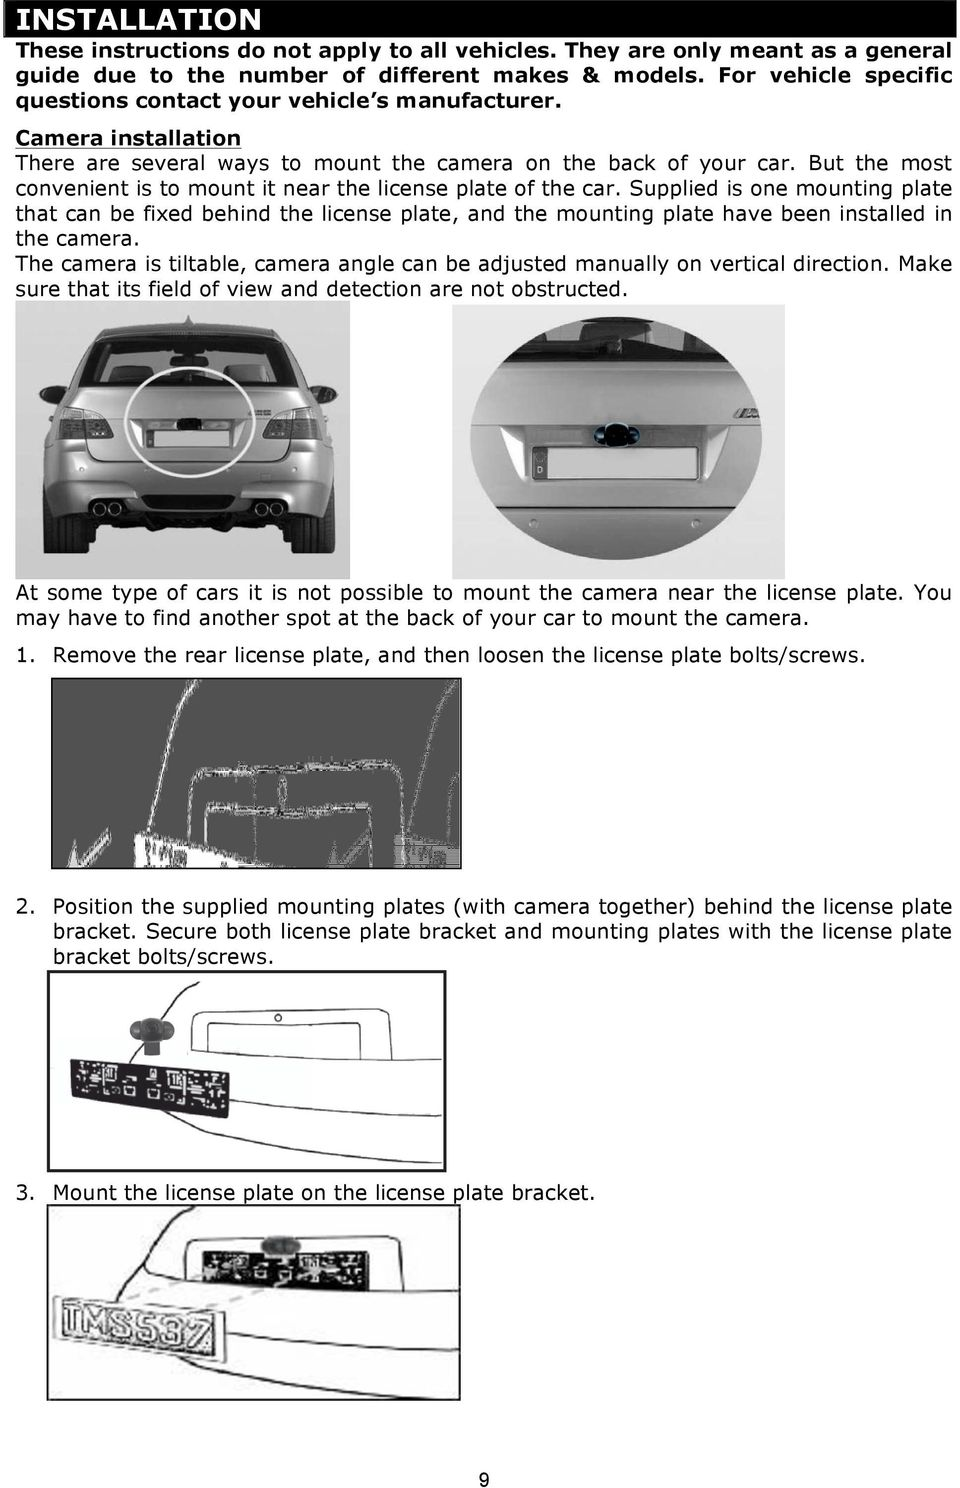 But the most convenient is to mount it near the license plate of the car.